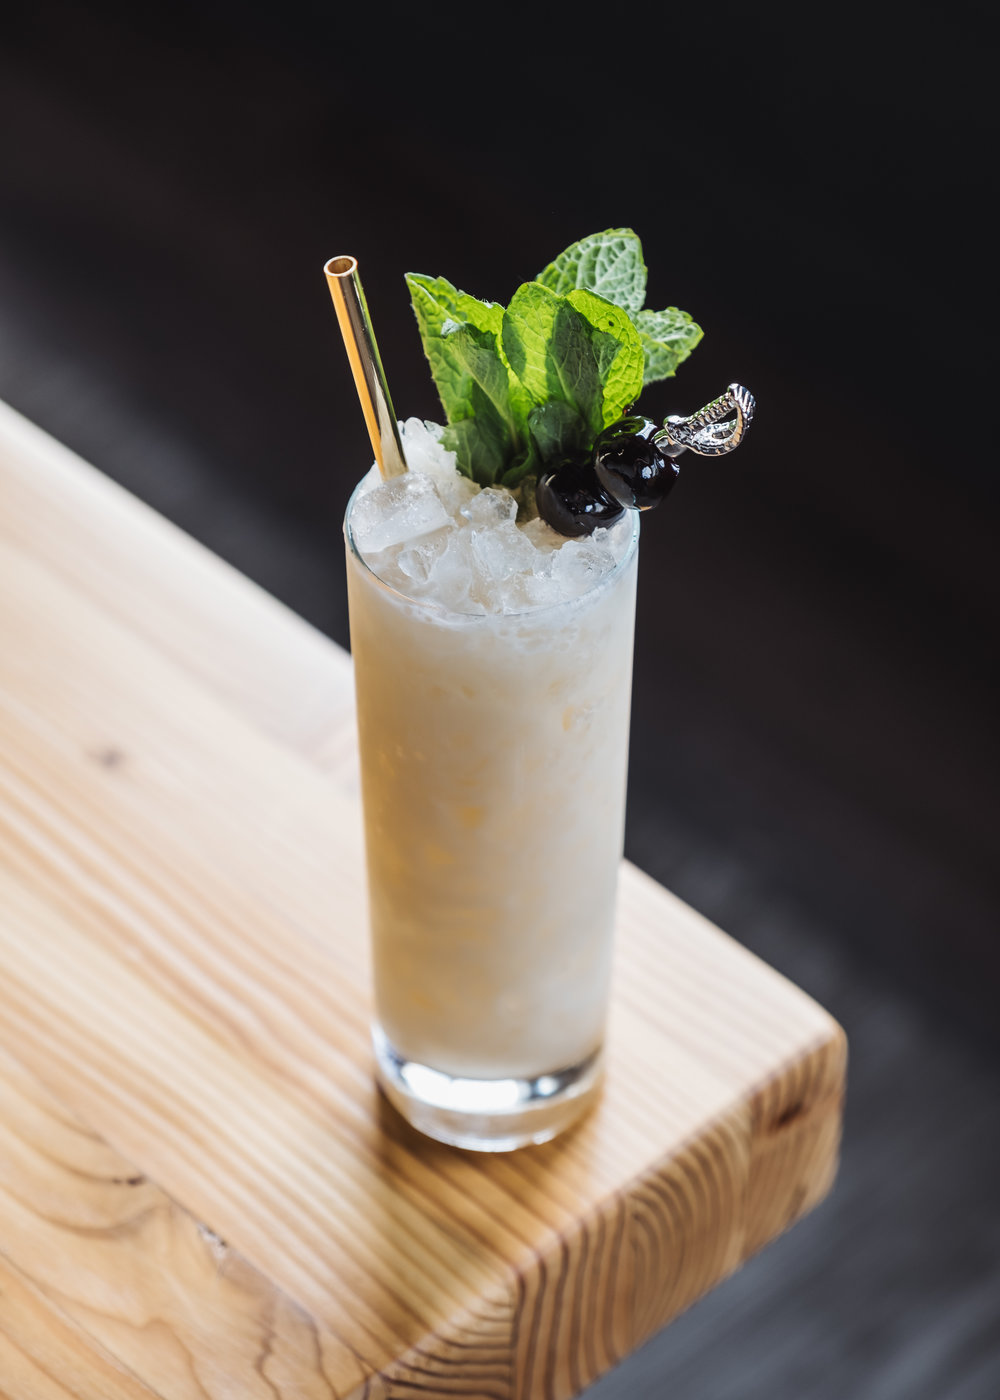 ingredients - 2 oz Krogstad Aquavit3/4 oz fresh lime juice1/2 oz creme of coconut1/2 oz root beer syrup